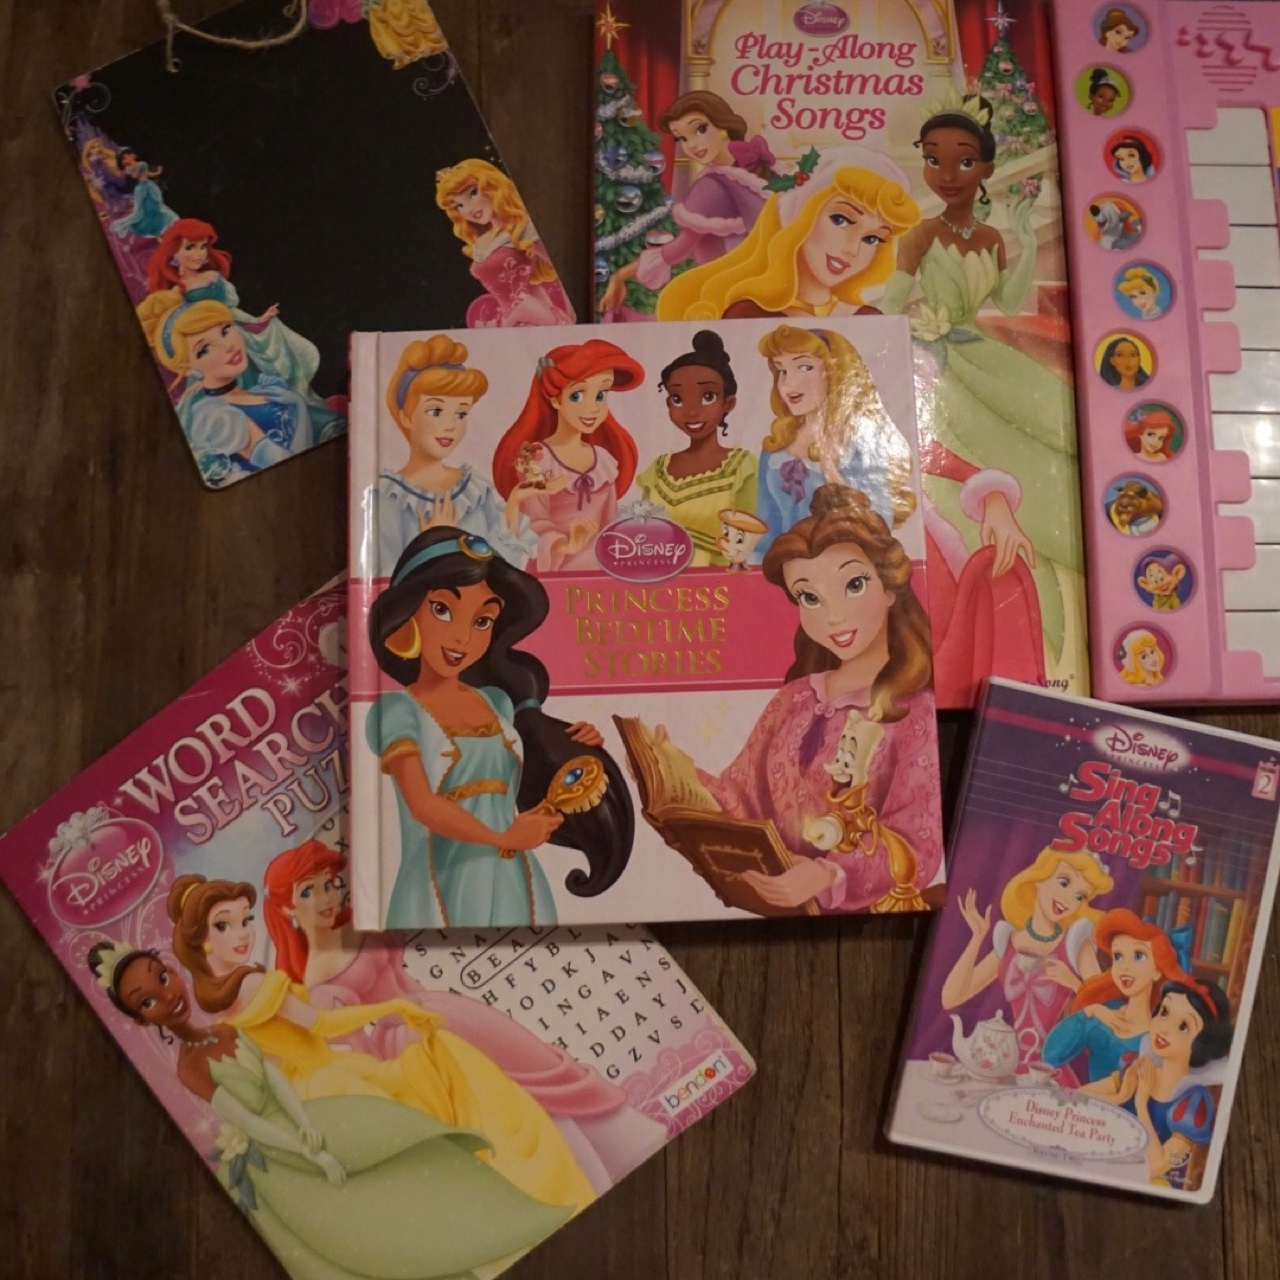 Disney Princess Sing-a-Long with Piano, Complete    - Depop